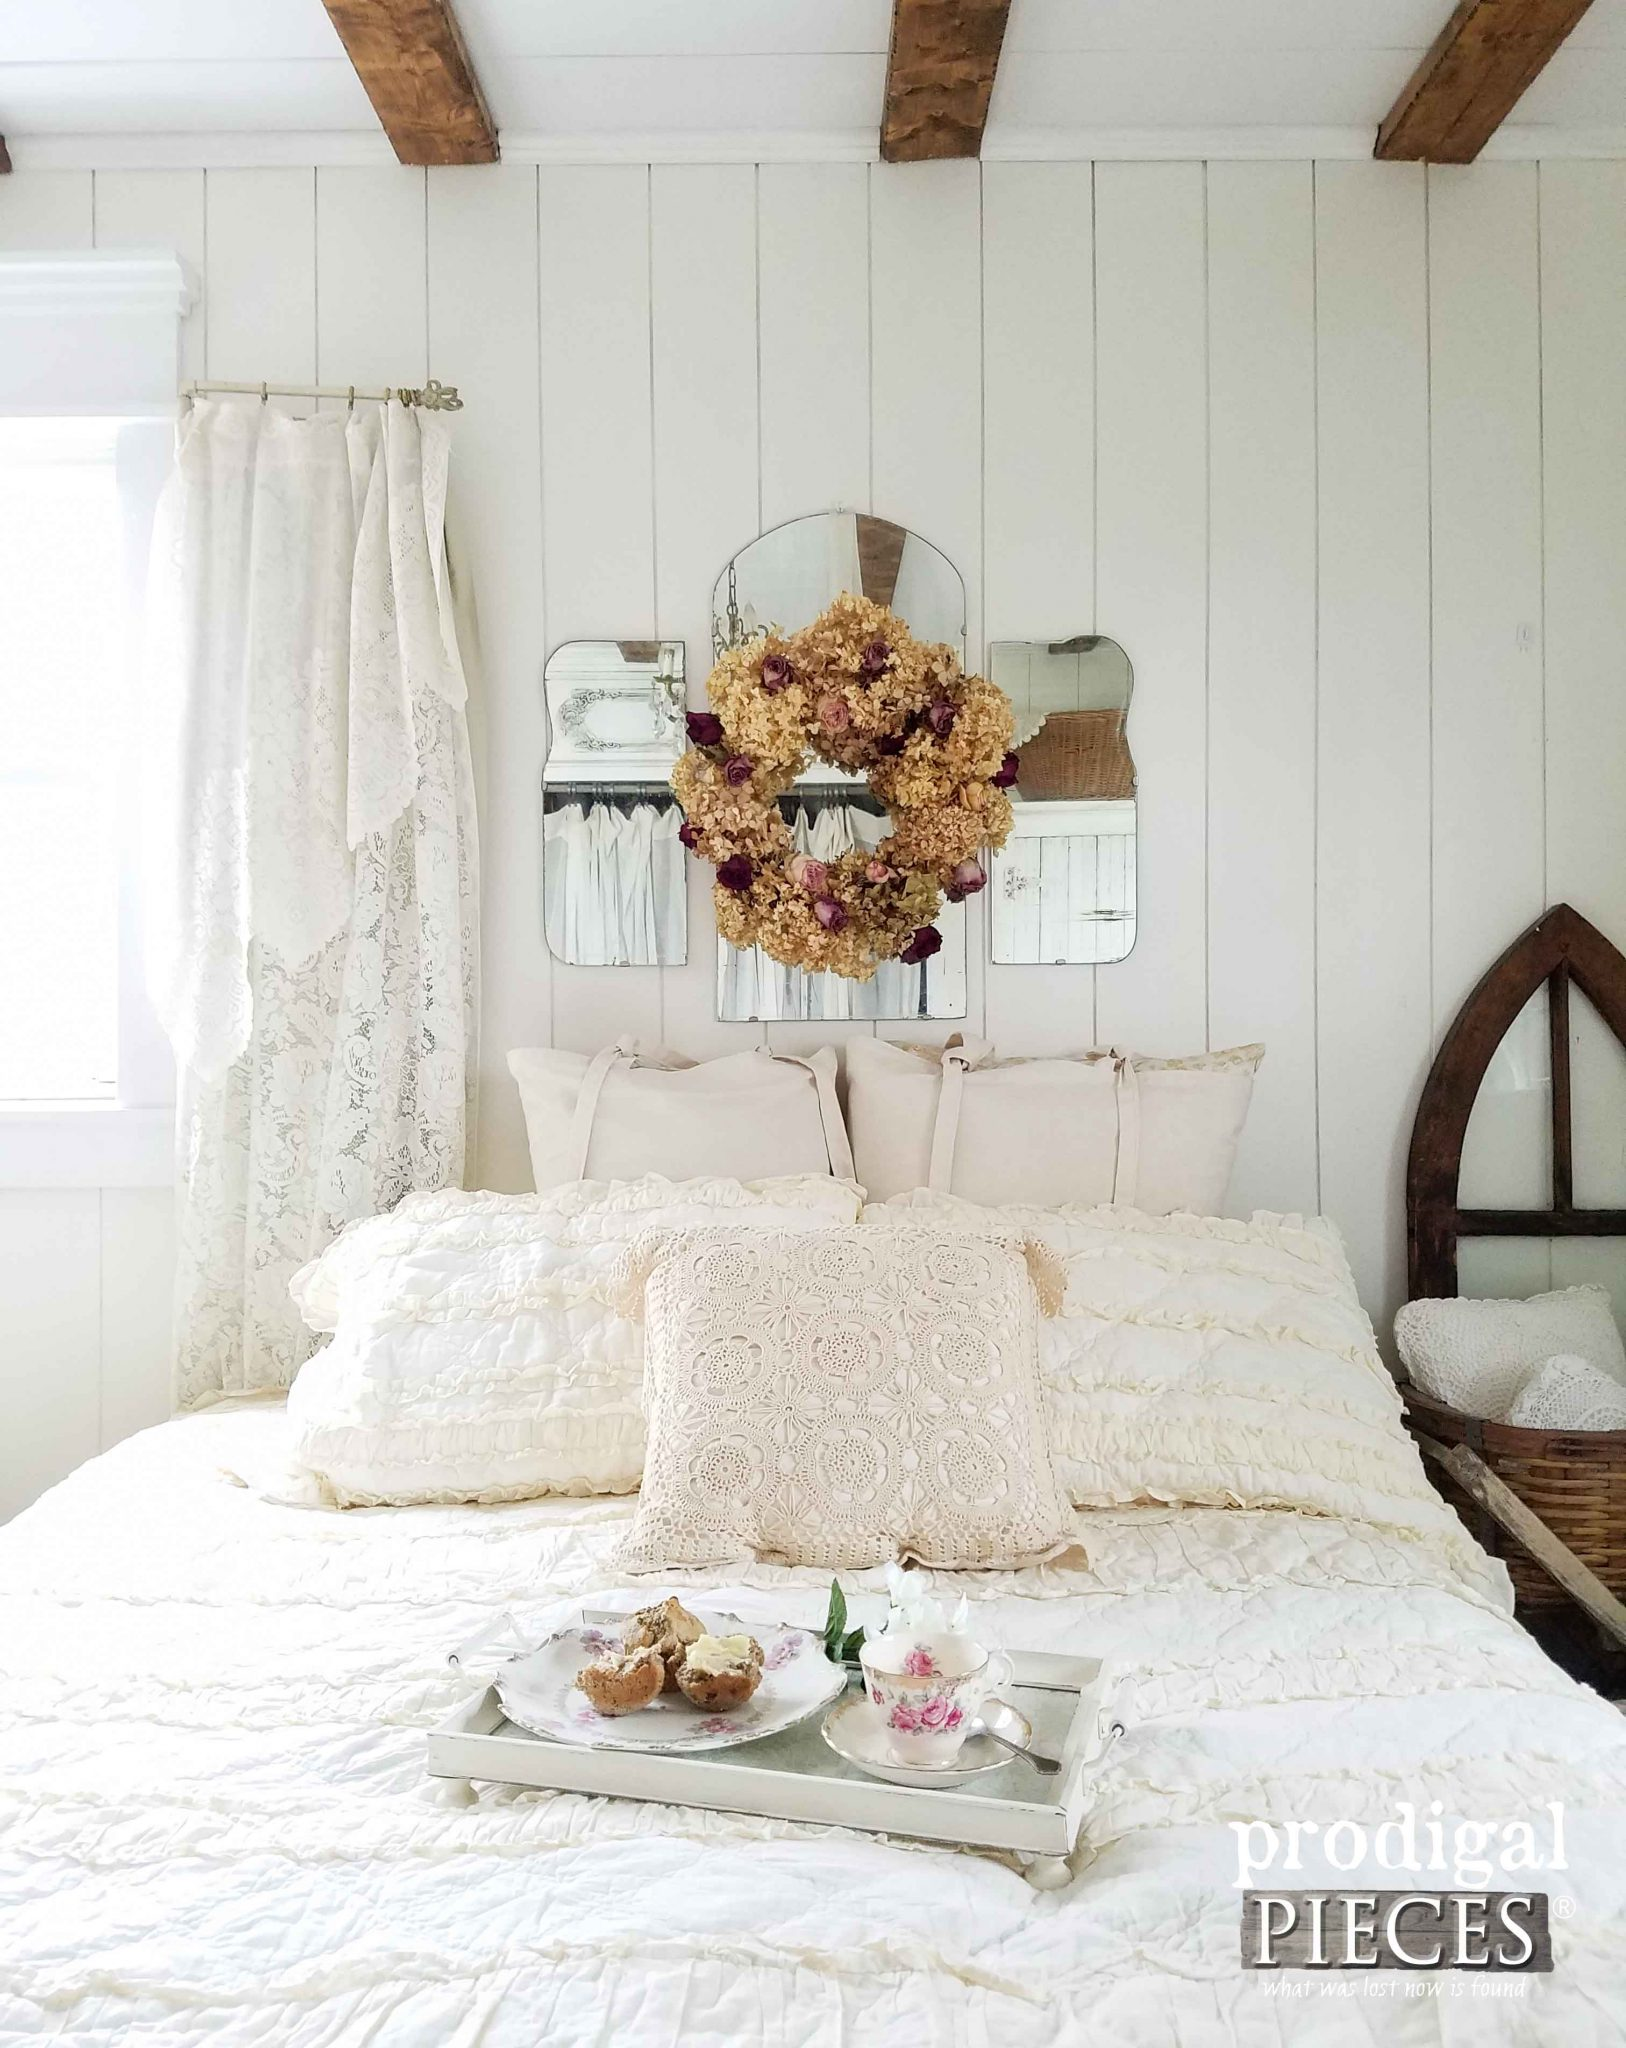 Farmhouse Bedroom with Repurposed Home Decor by Prodigal Pieces | prodigalpieces.com